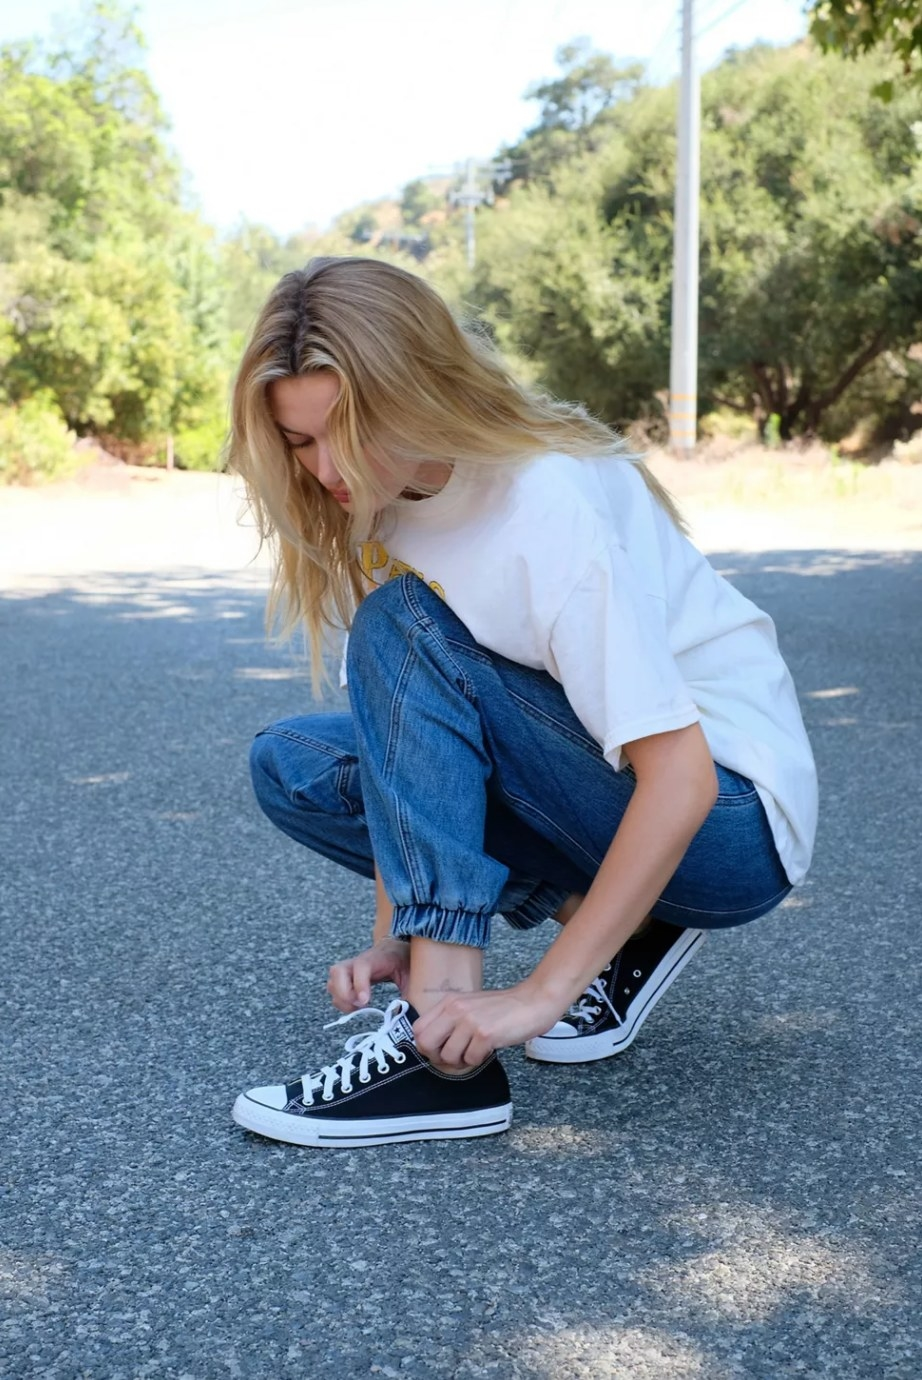 the Converse sneakers in black